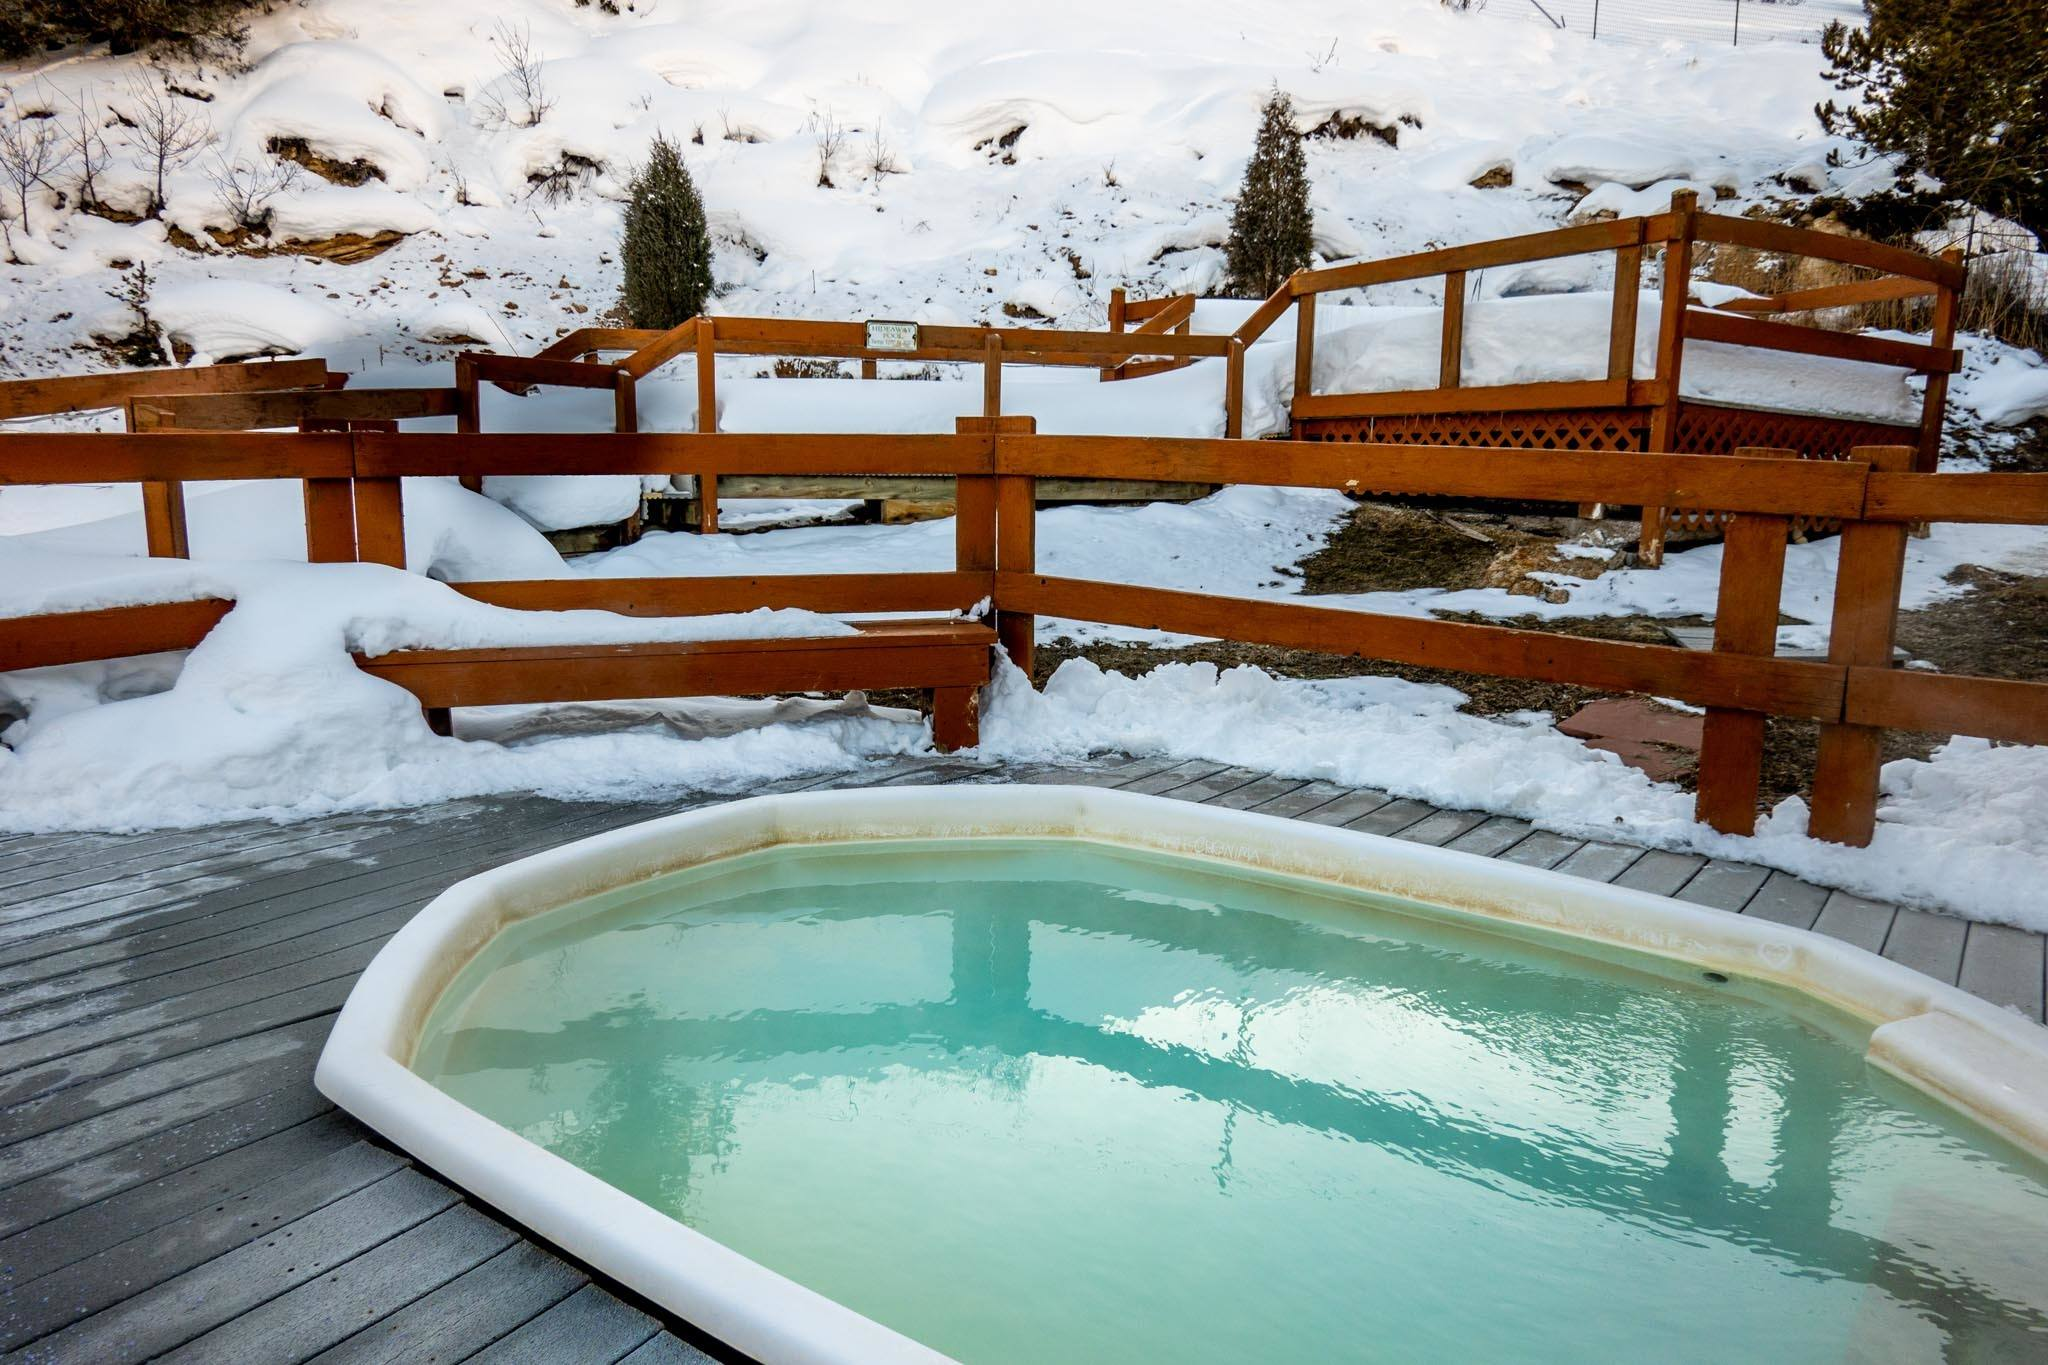 The Hot Sulphur Springs pools in winter with snow.